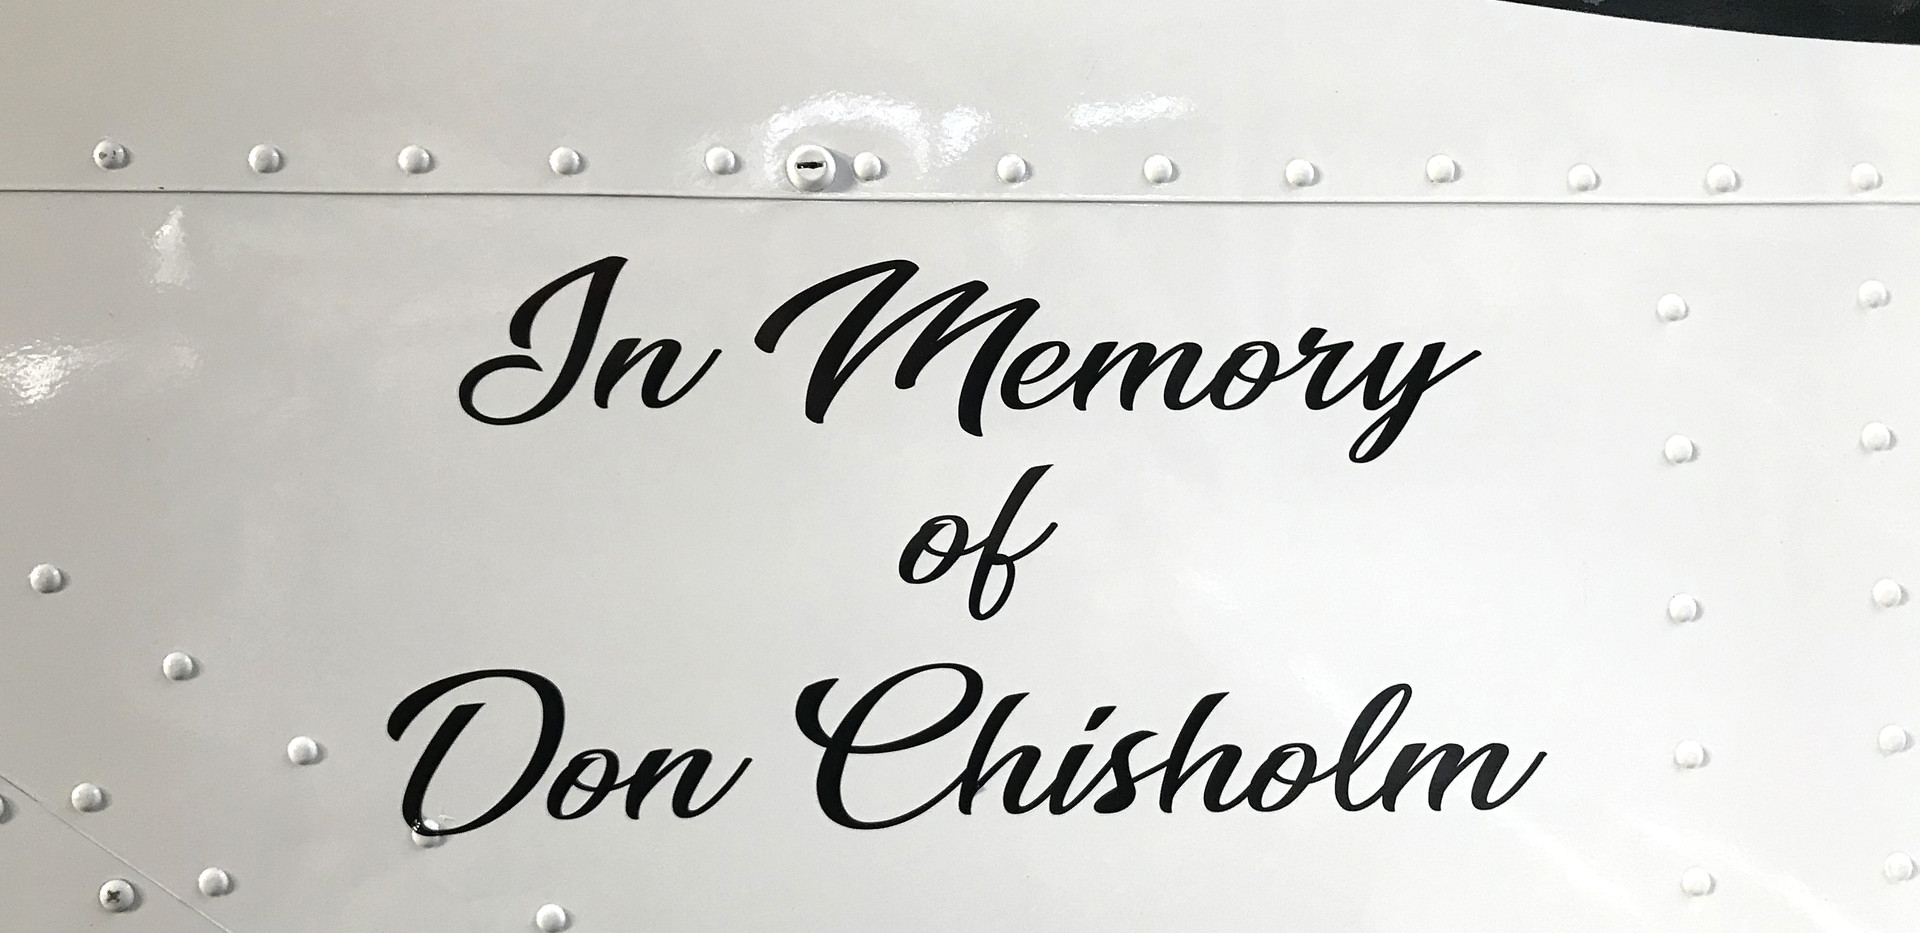 Aerosport Scamp In Memory of its owner, Don Chisholm